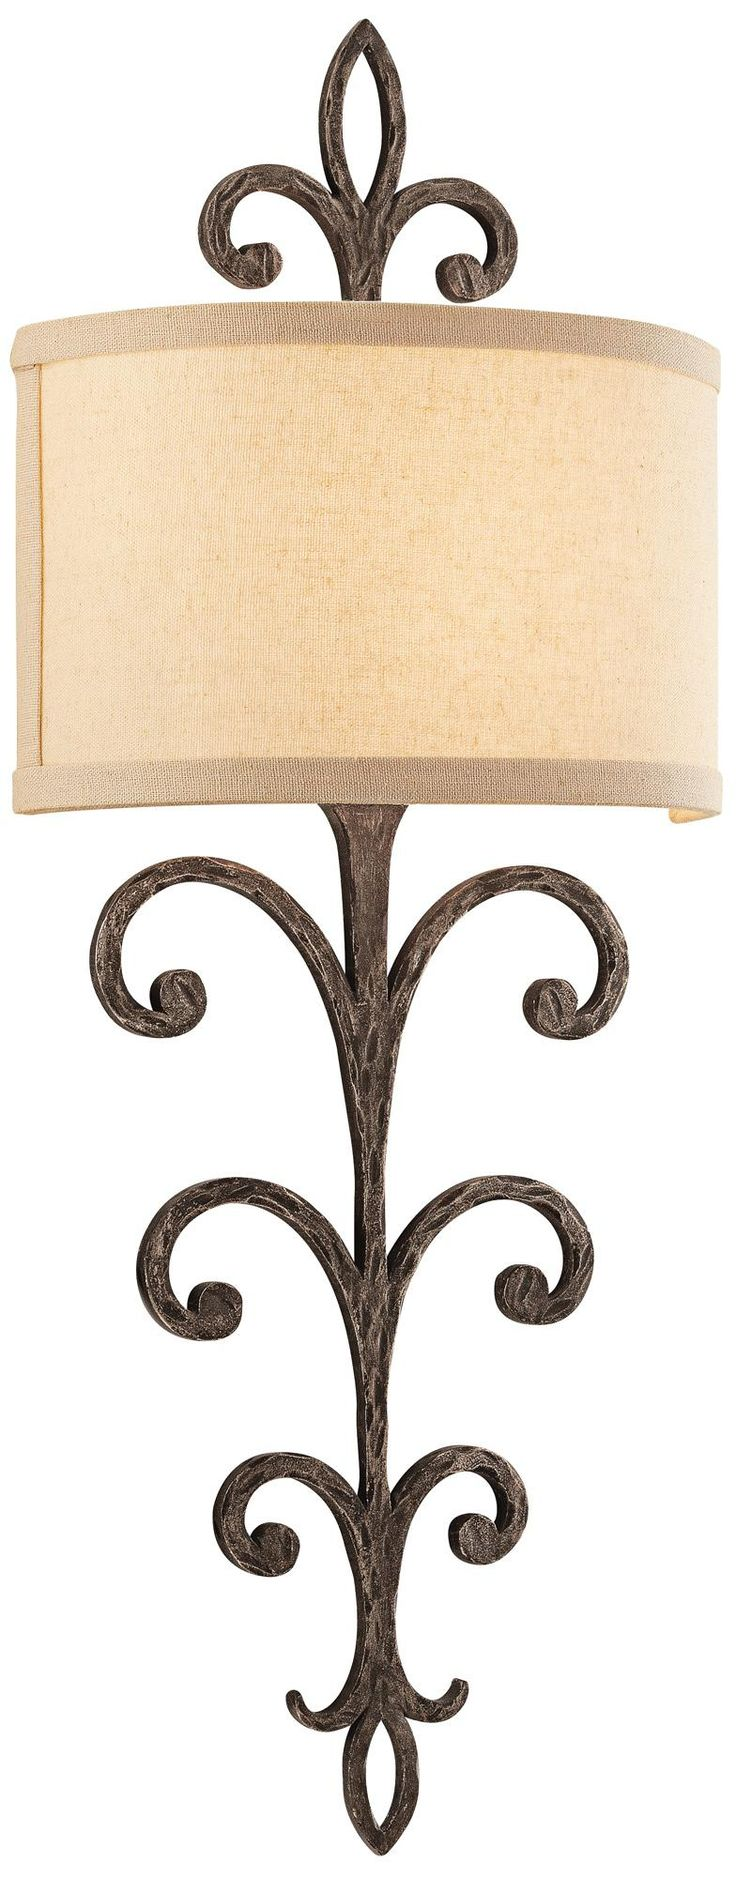 Best 25 bronze wall sconce ideas on pinterest bathroom sconce crawford 11 wide cottage bronze wall sconce amipublicfo Image collections